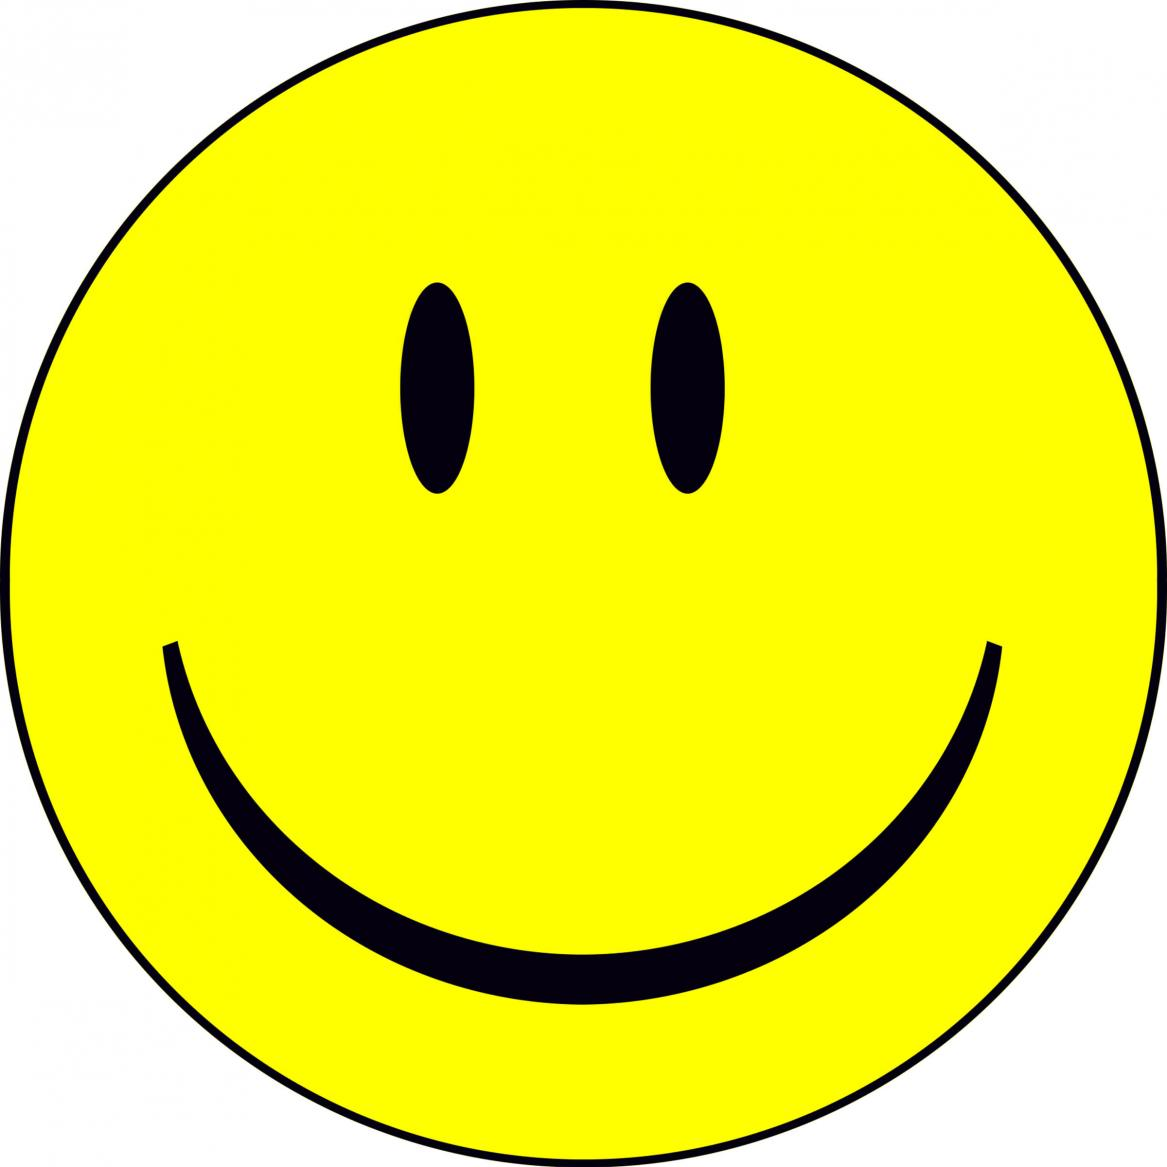 Clipart Of A Smiley Face.